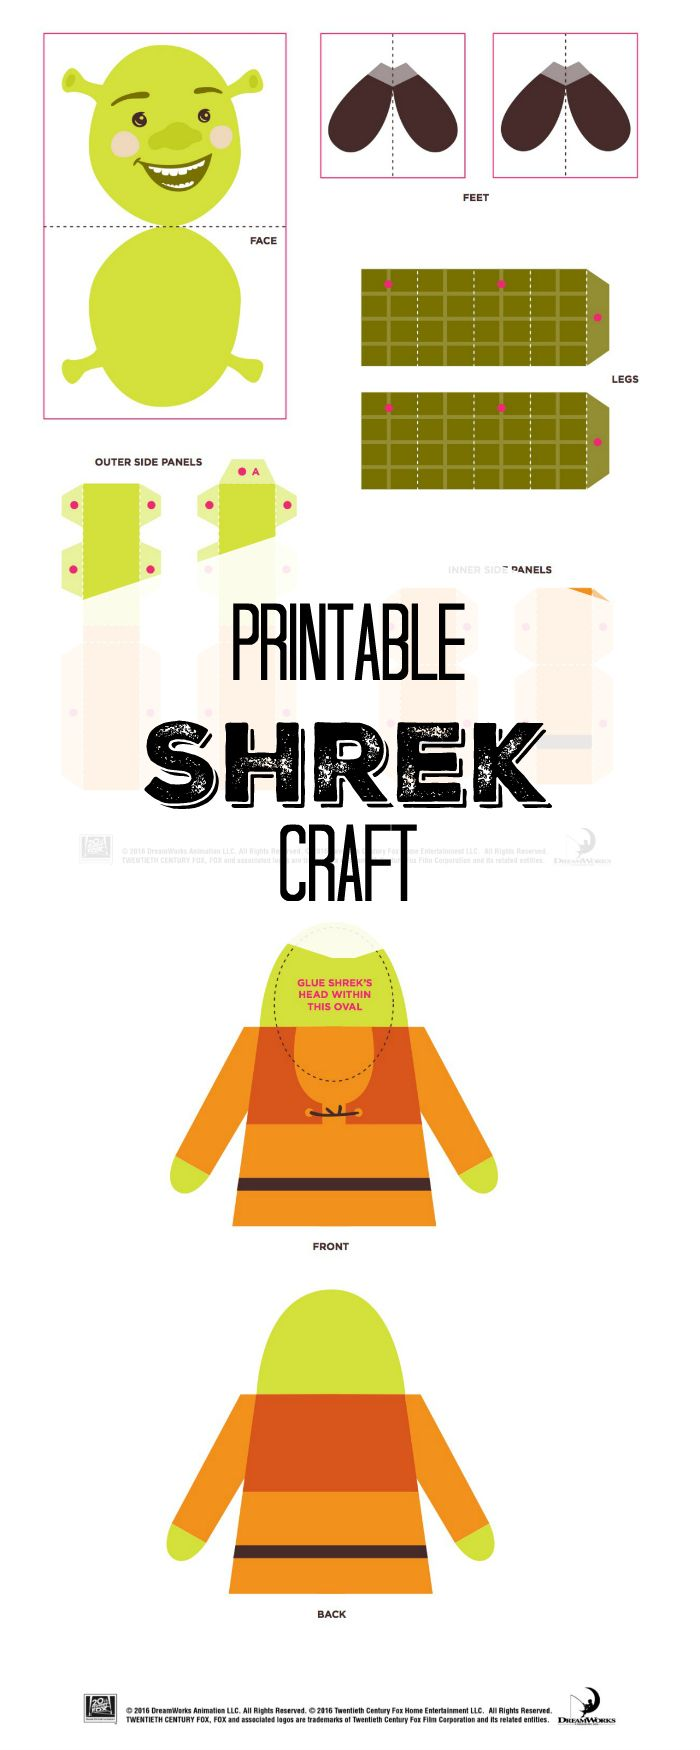 65 Best Images About Boost Your Bathroom On Pinterest: 15 Coloriage Petit Biscuit Shrek